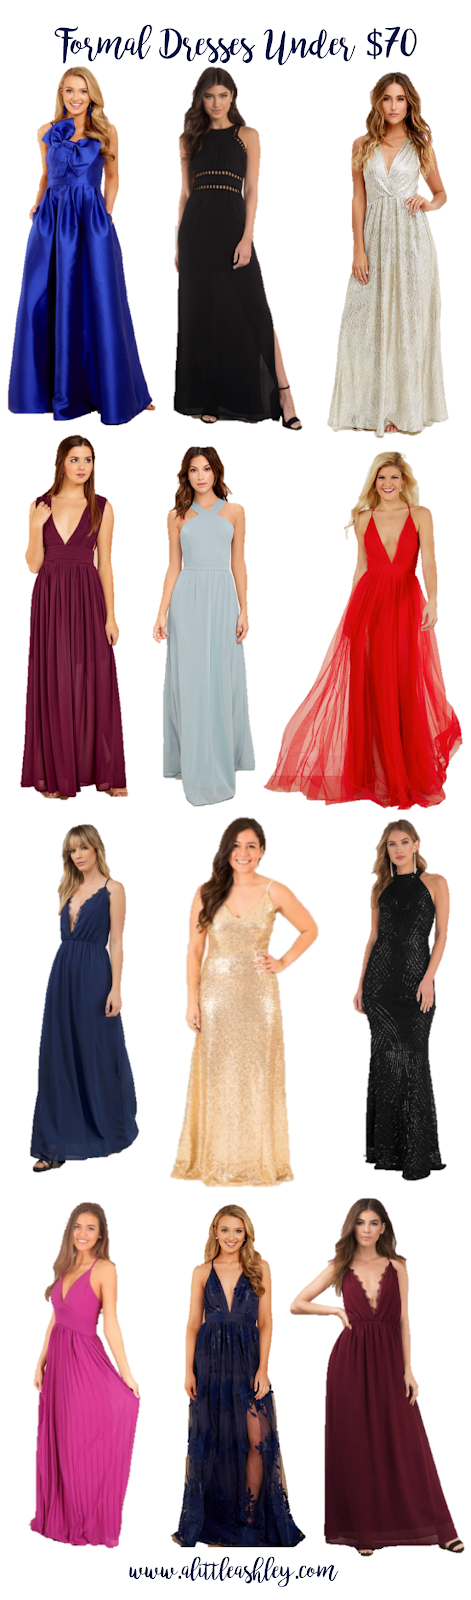 twelve_formal_dresses_under_seventy_dollars